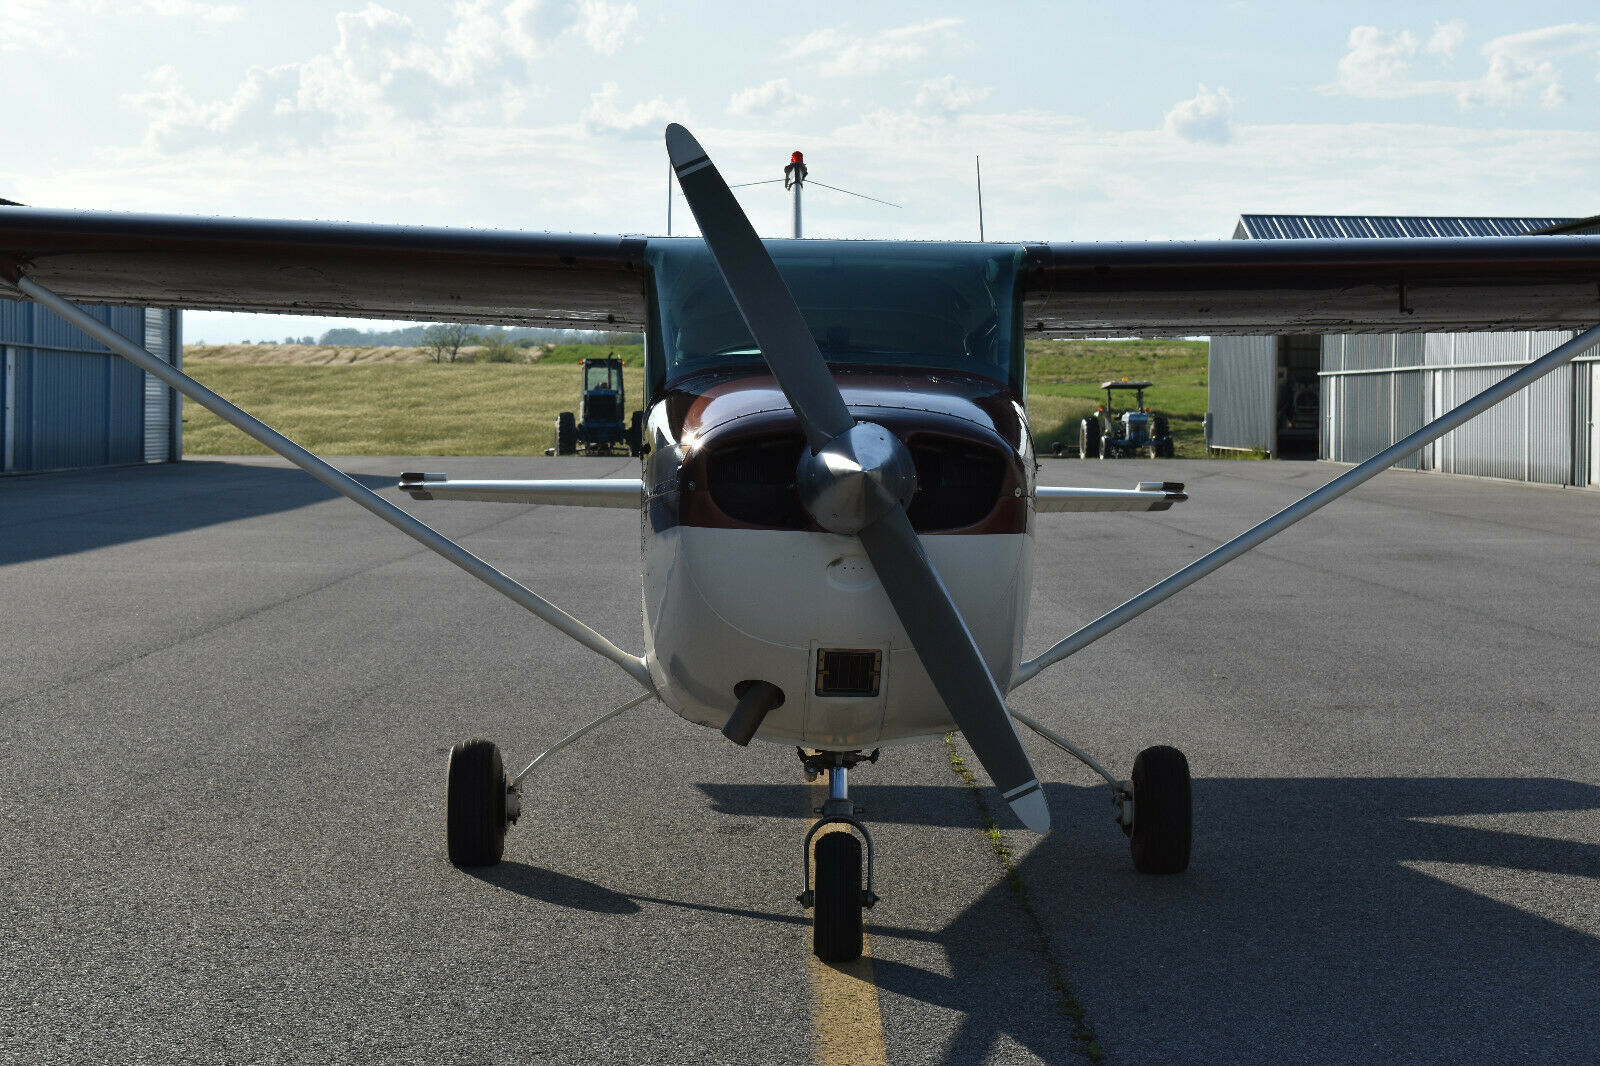 hangared 1969 Cessna 172K aircraft for sale